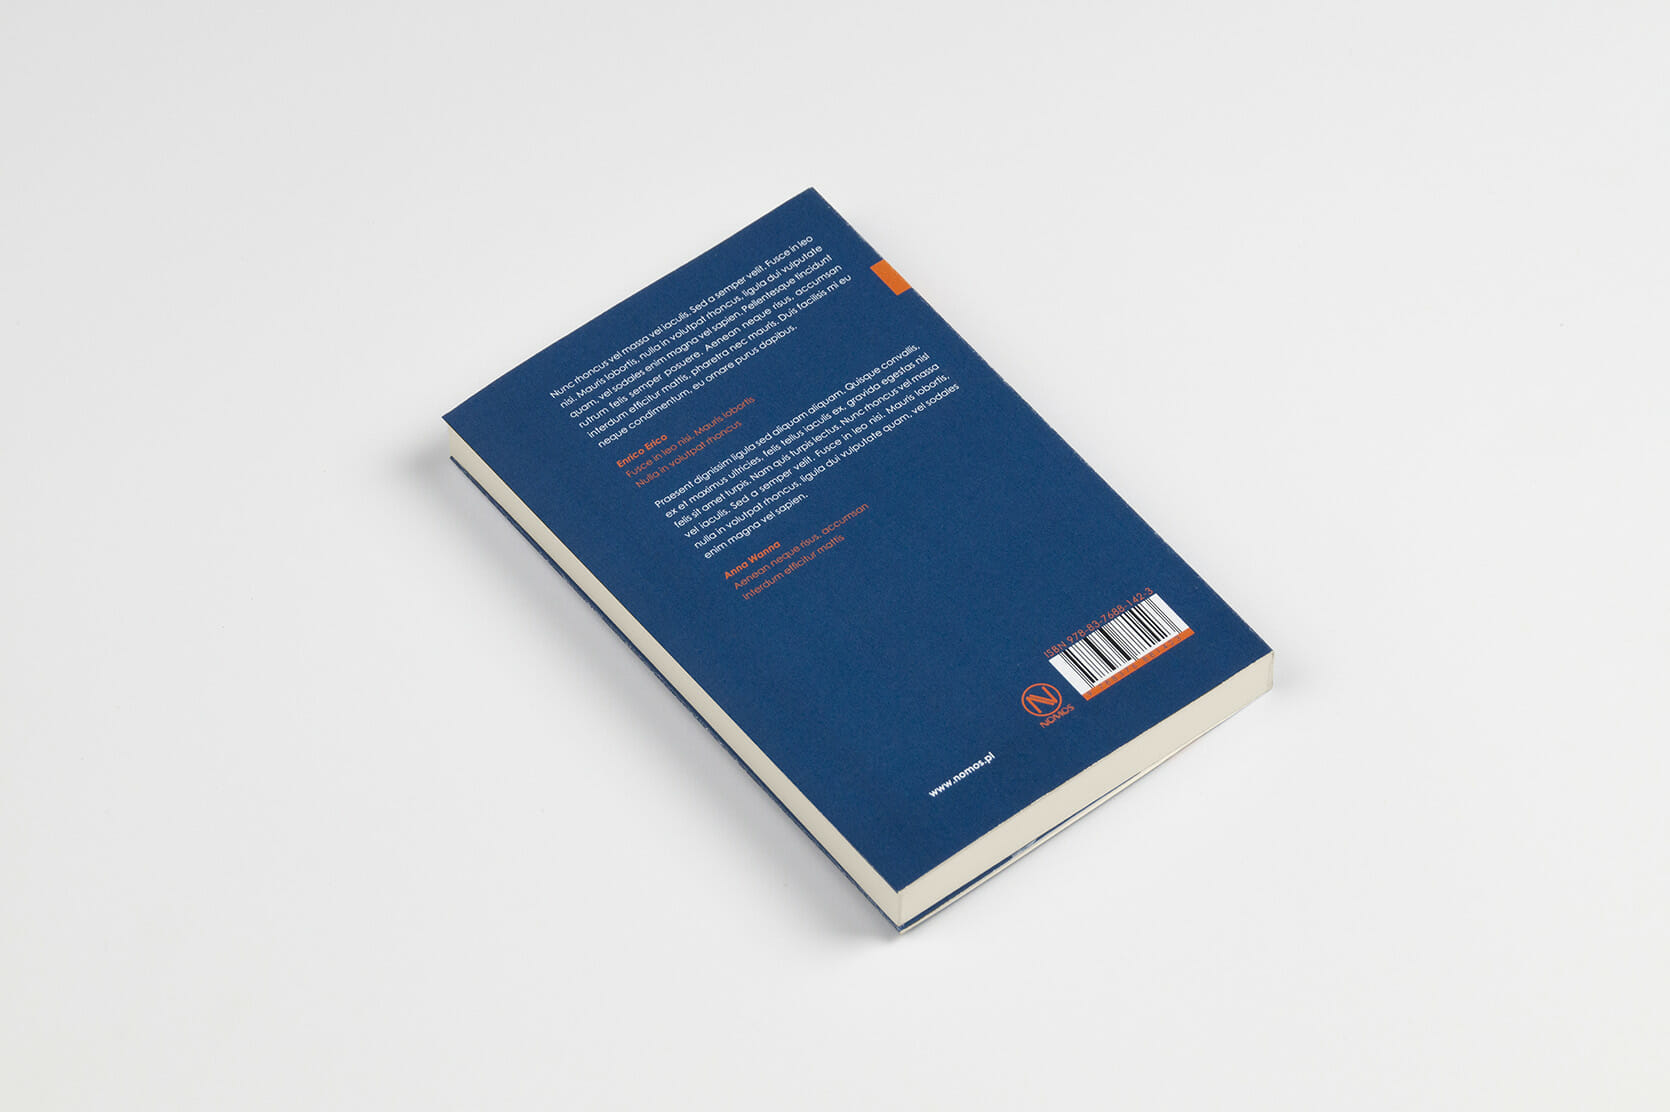 Postmodernism - book cover